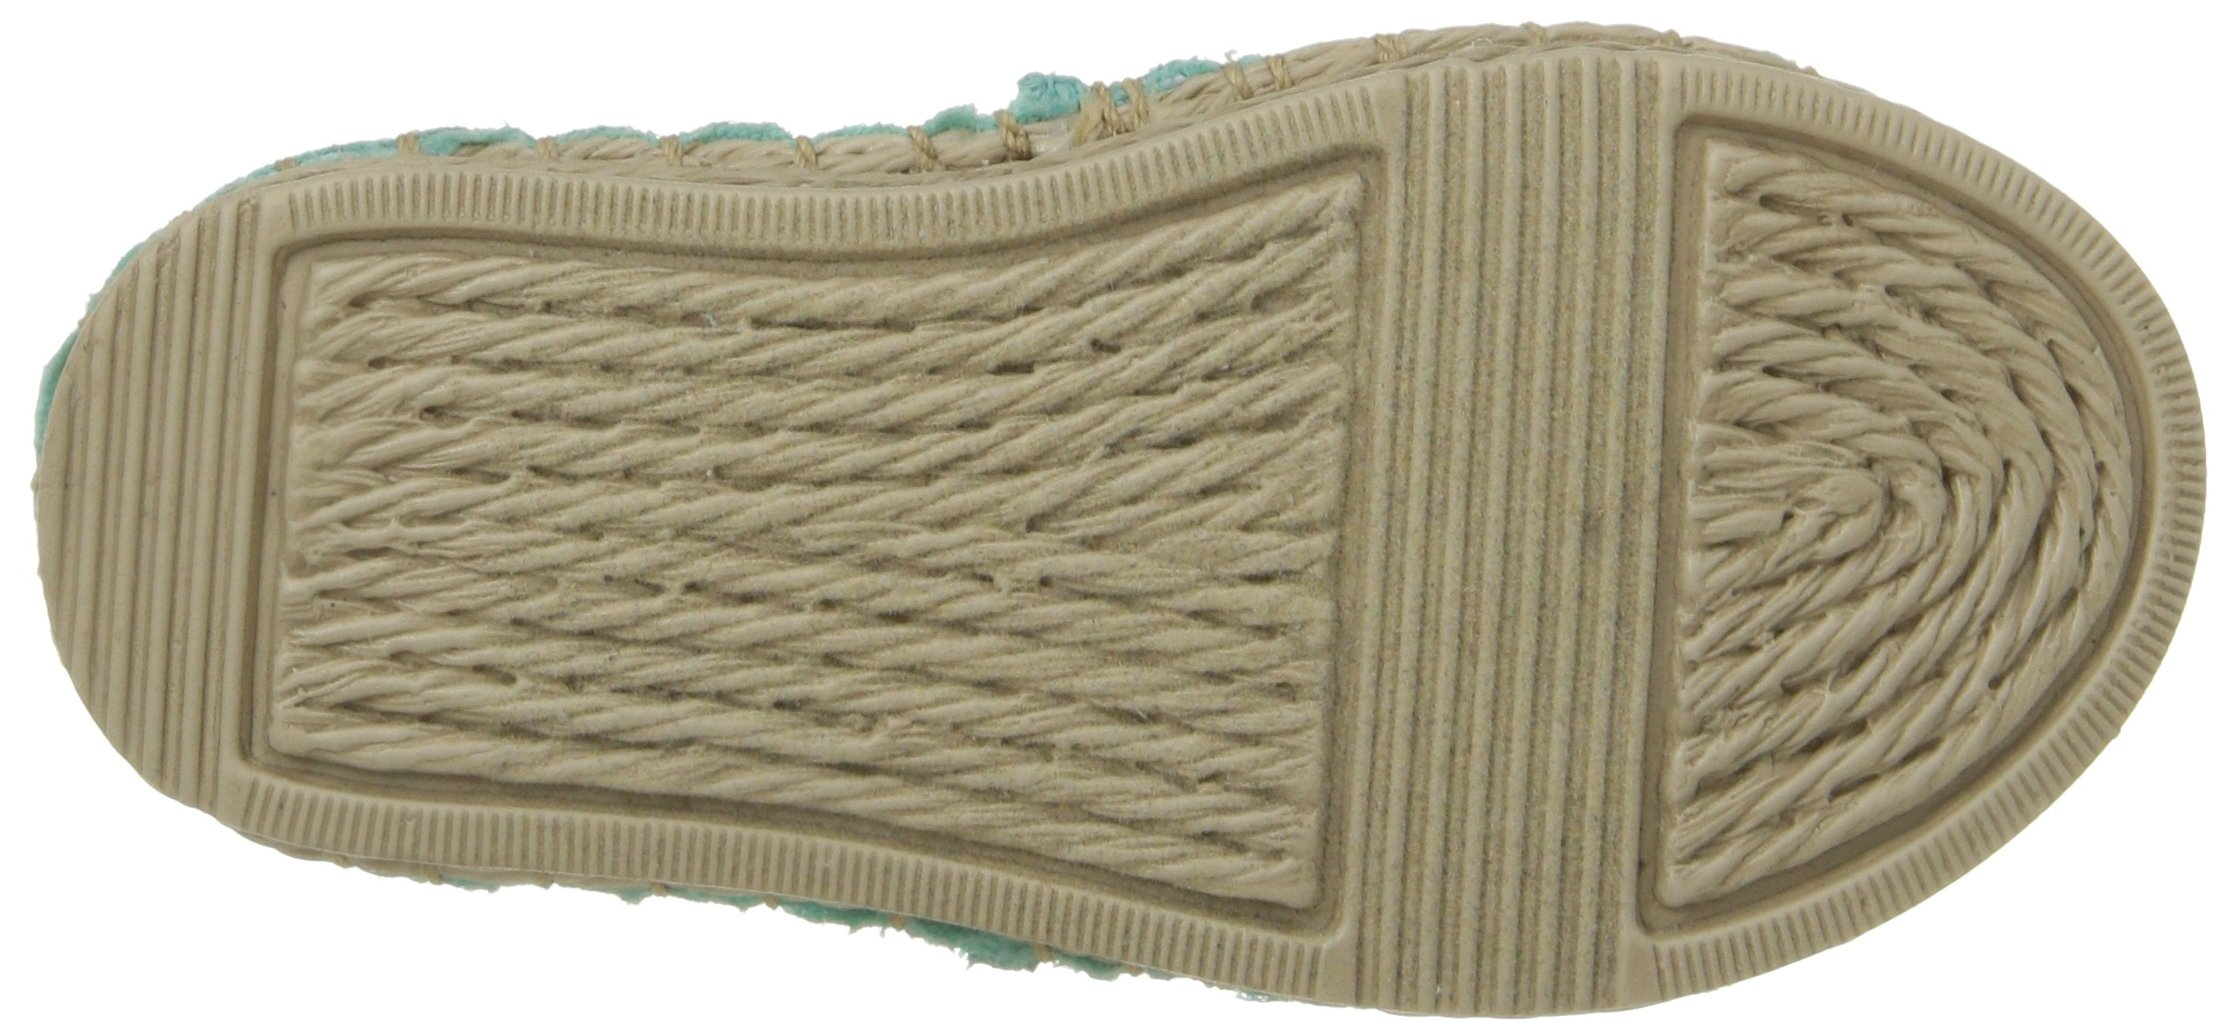 Carter's Astrid Girl's Espadrille Slip-On, Turquoise, 10 M US Toddler by Carter's (Image #3)